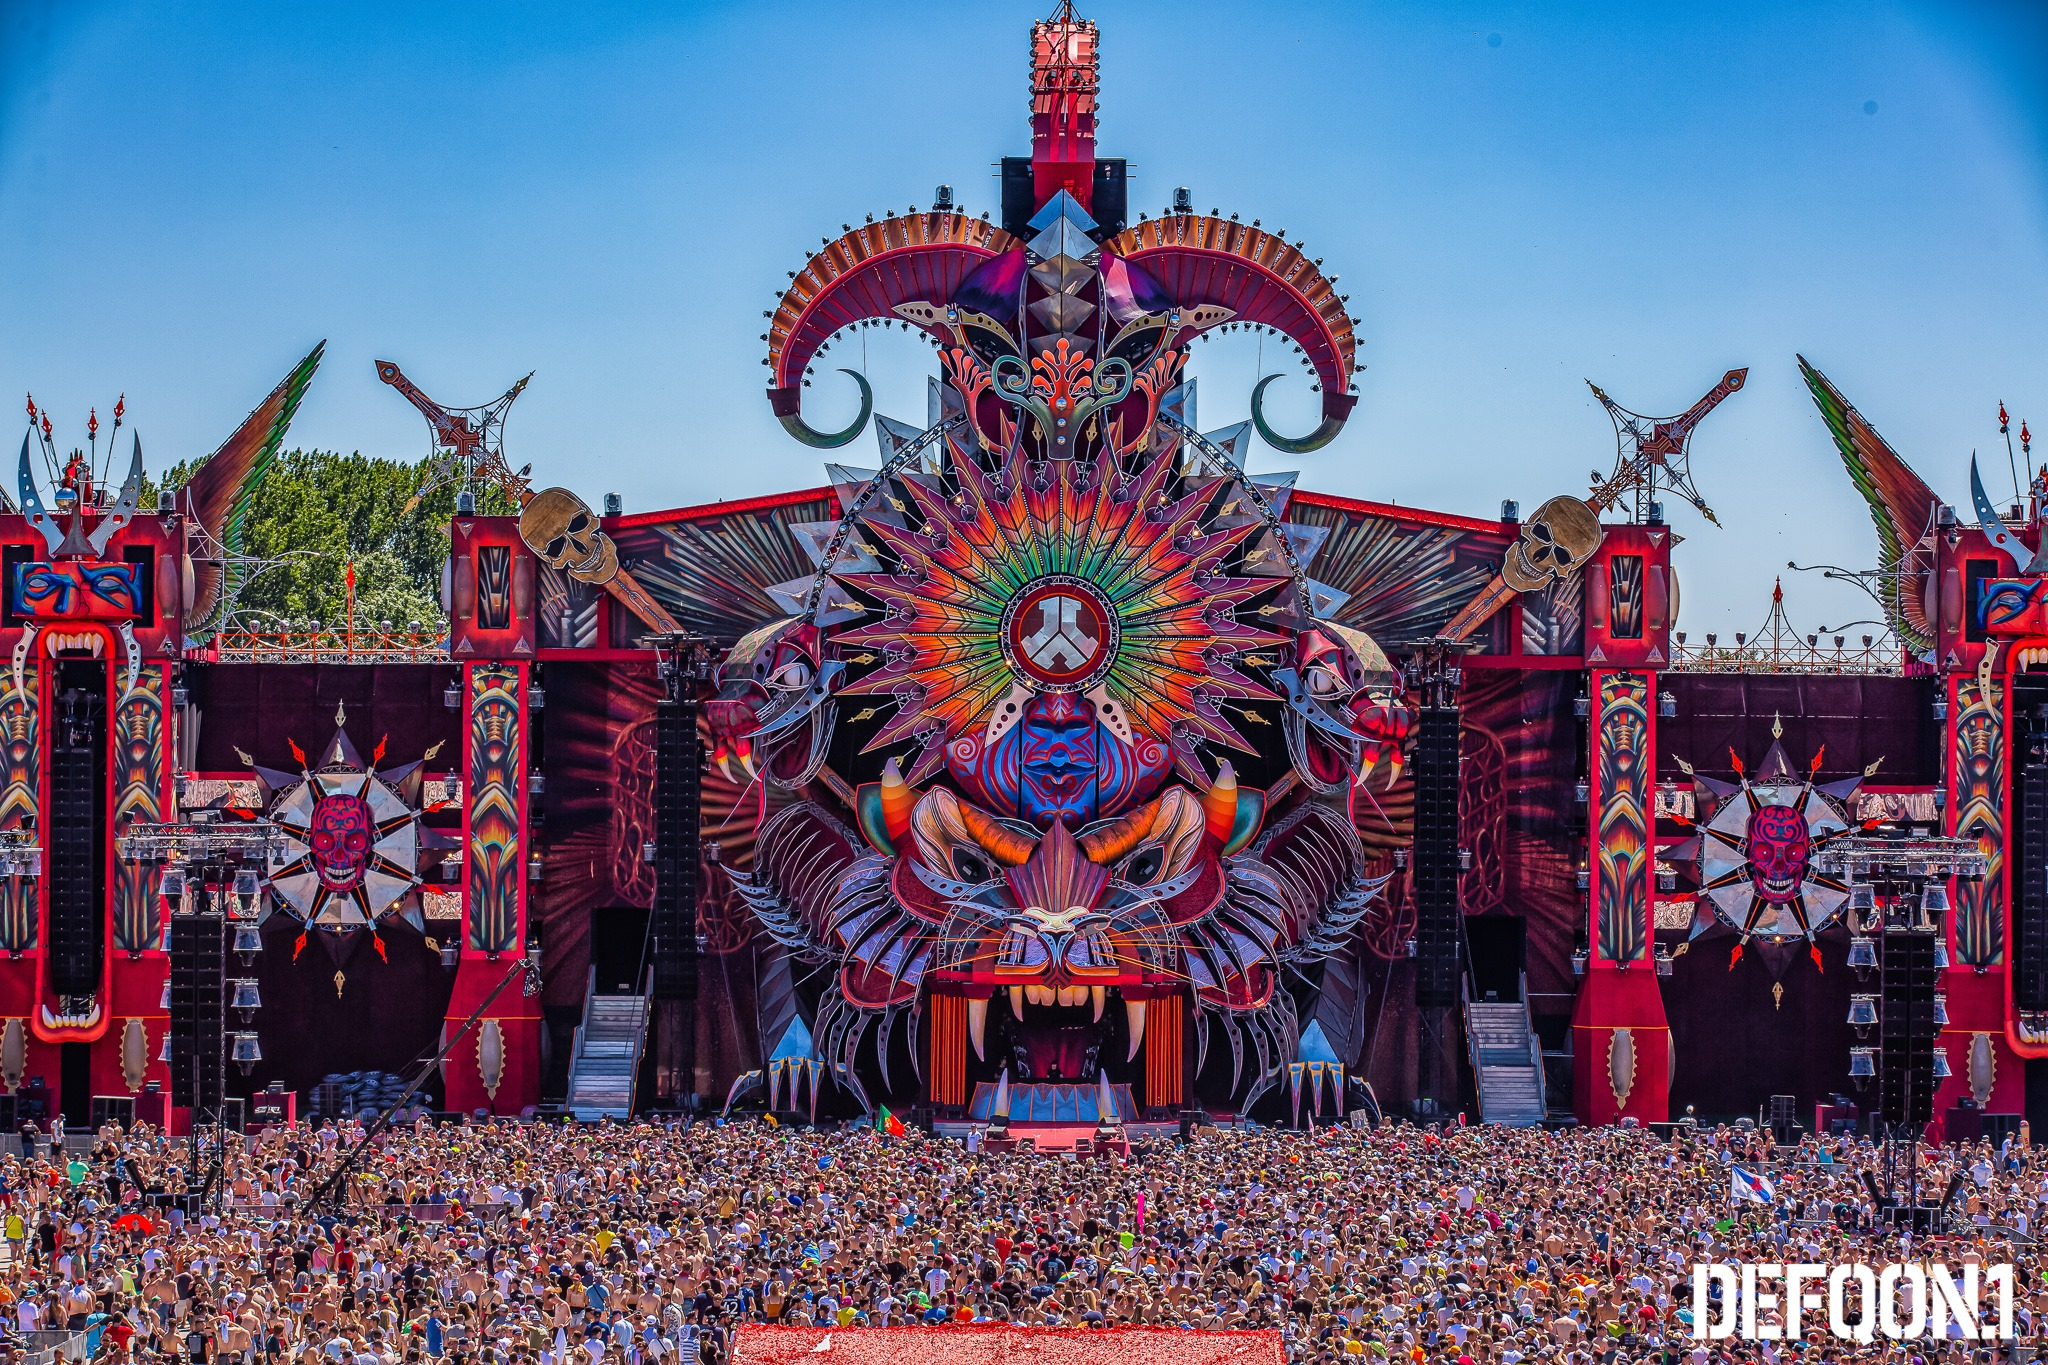 REVIEW] Defqon 1 is the ultimate harder styles paradise